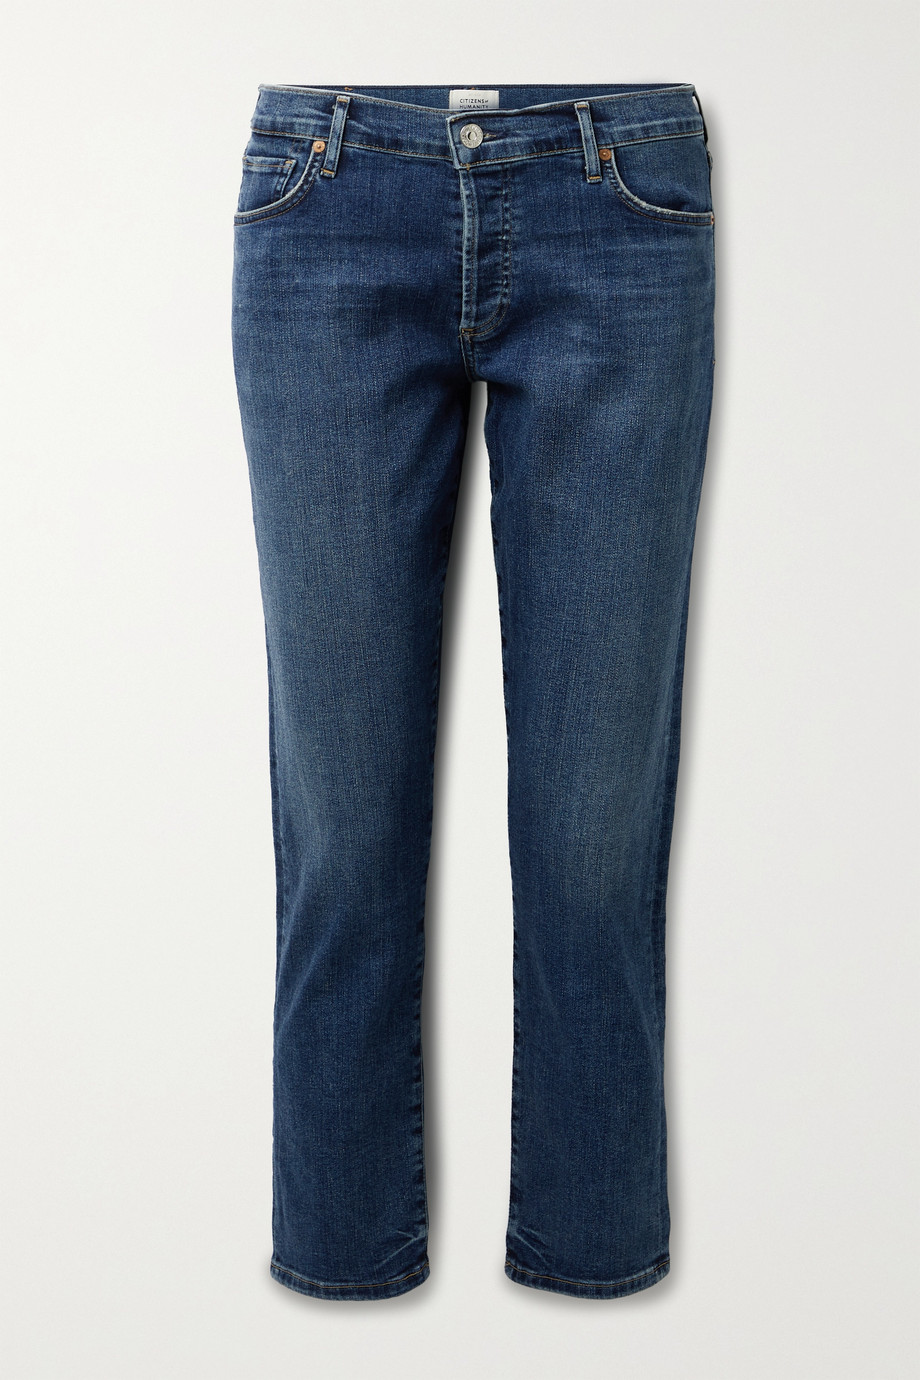 Citizens of Humanity Emerson distressed mid-rise straight-leg jeans